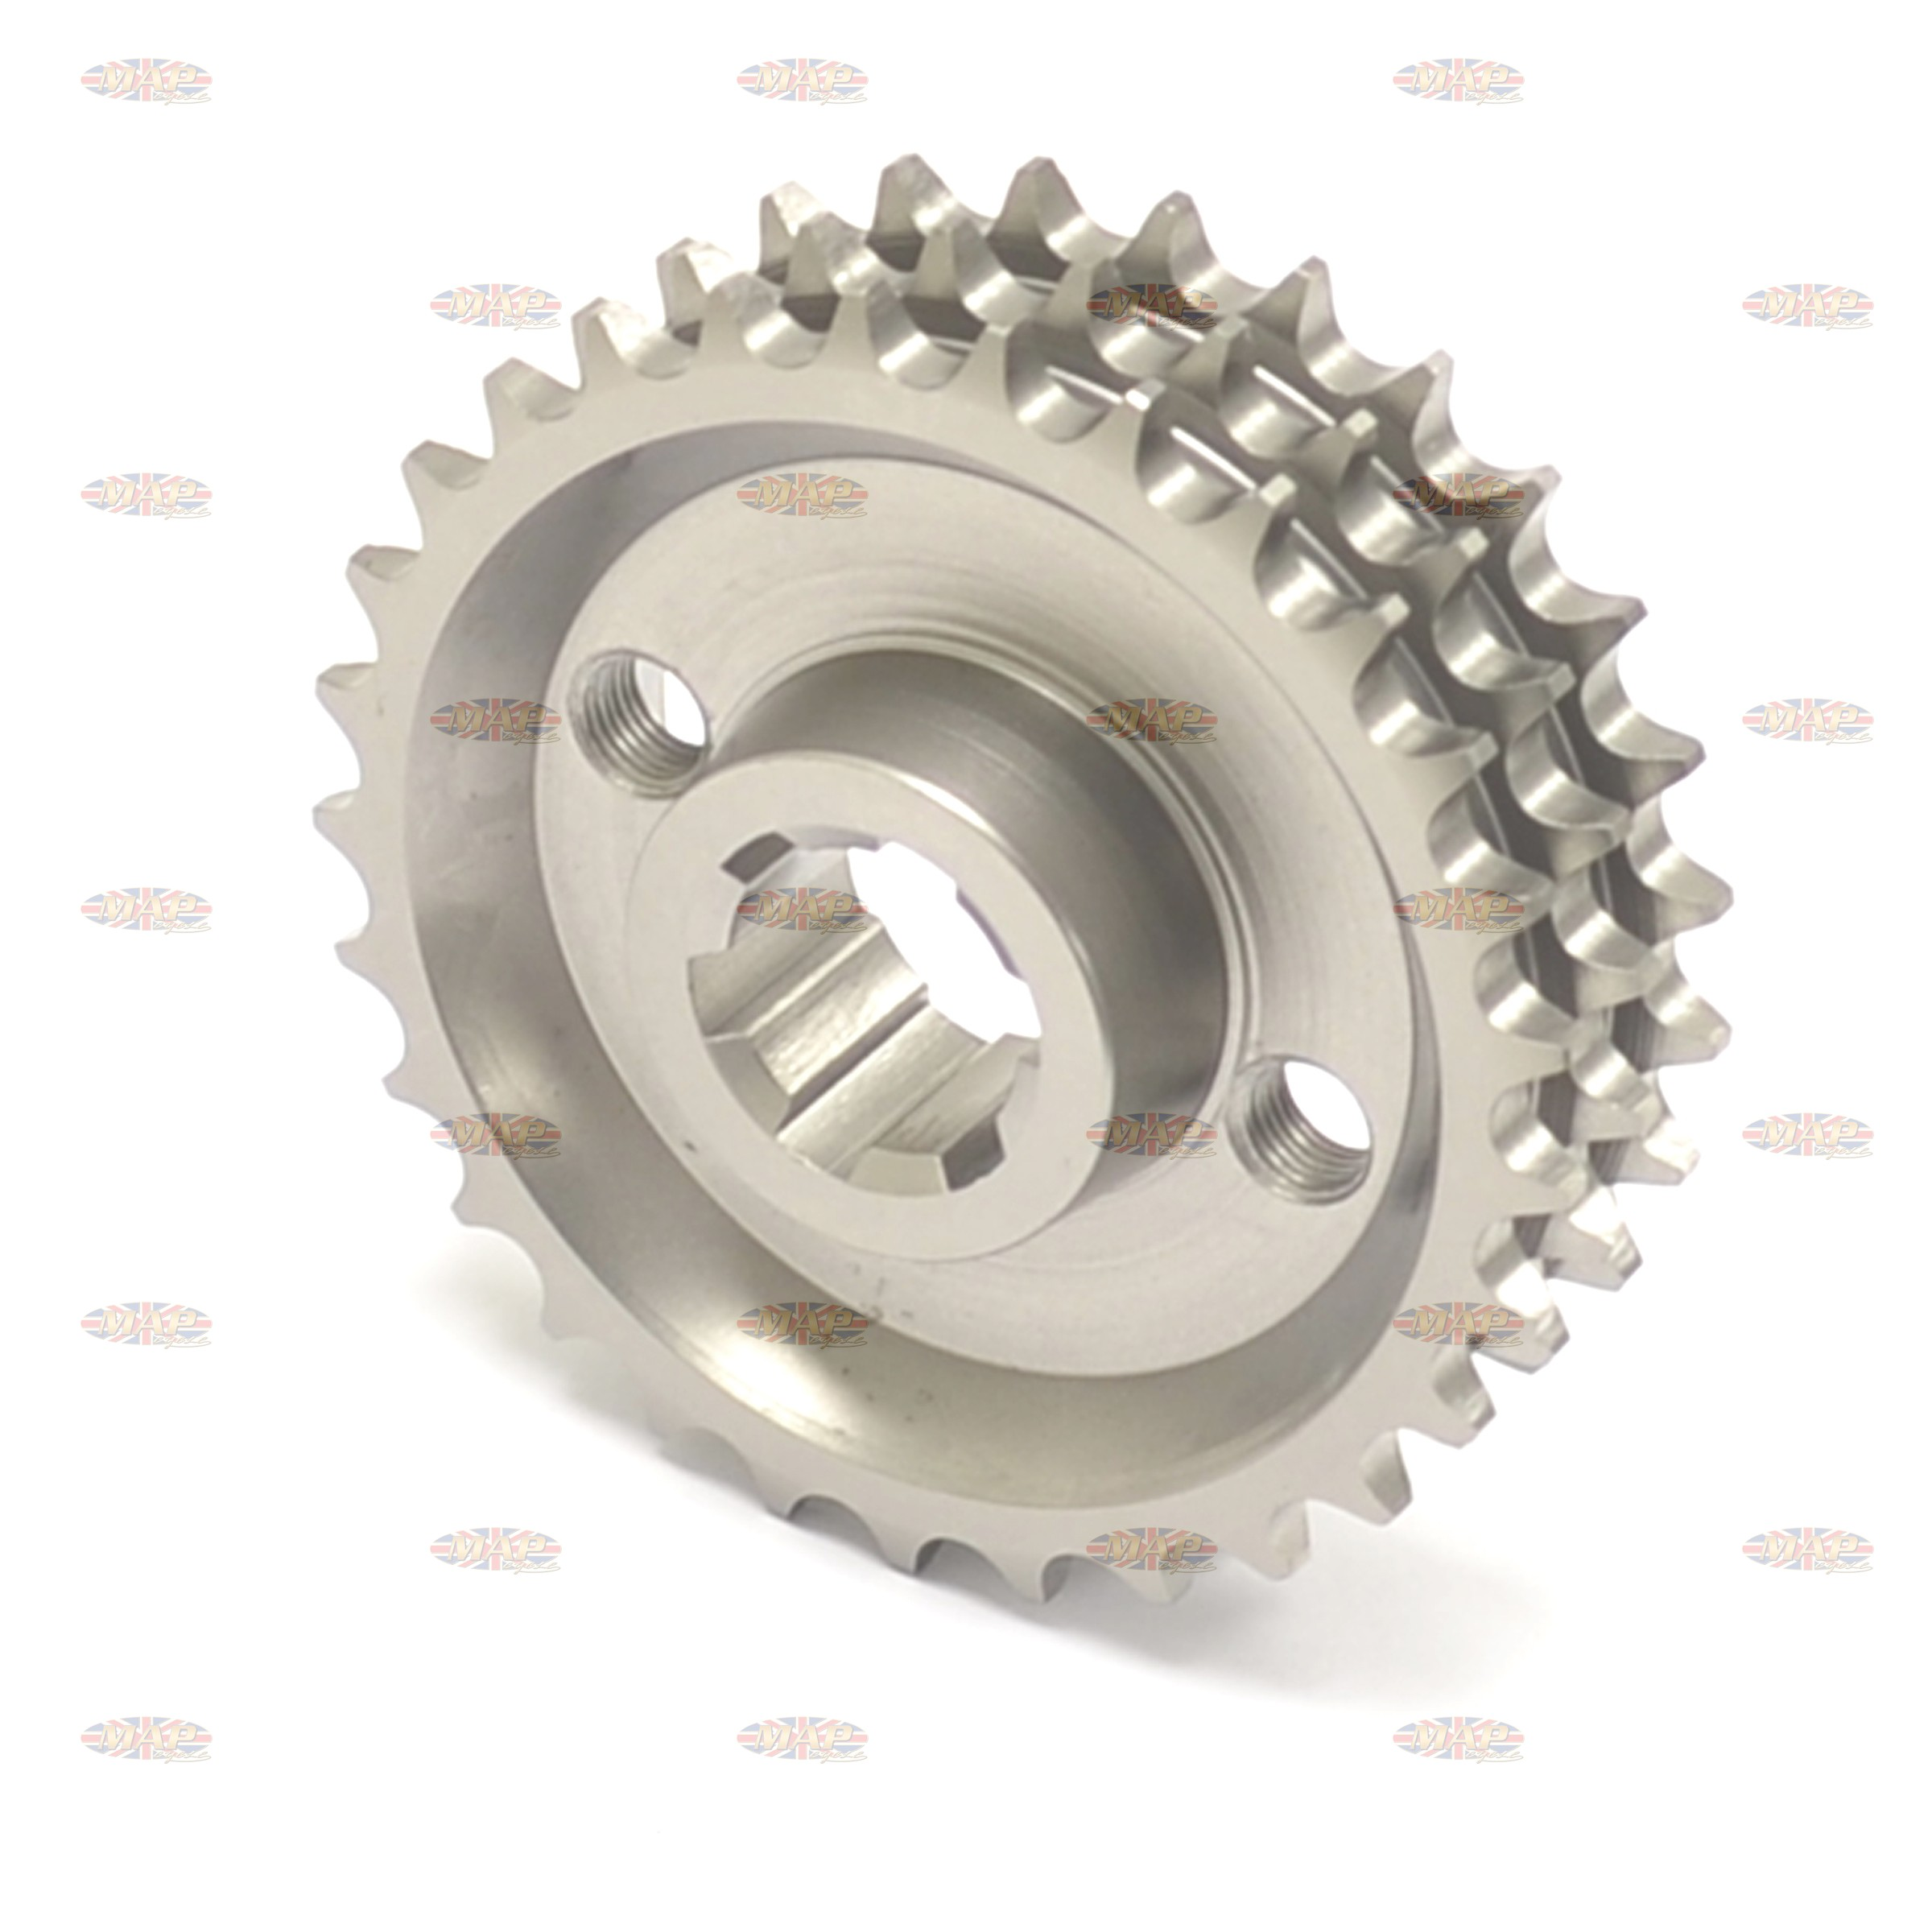 Engine Sprocket 29T Triplex - T140 71-3542